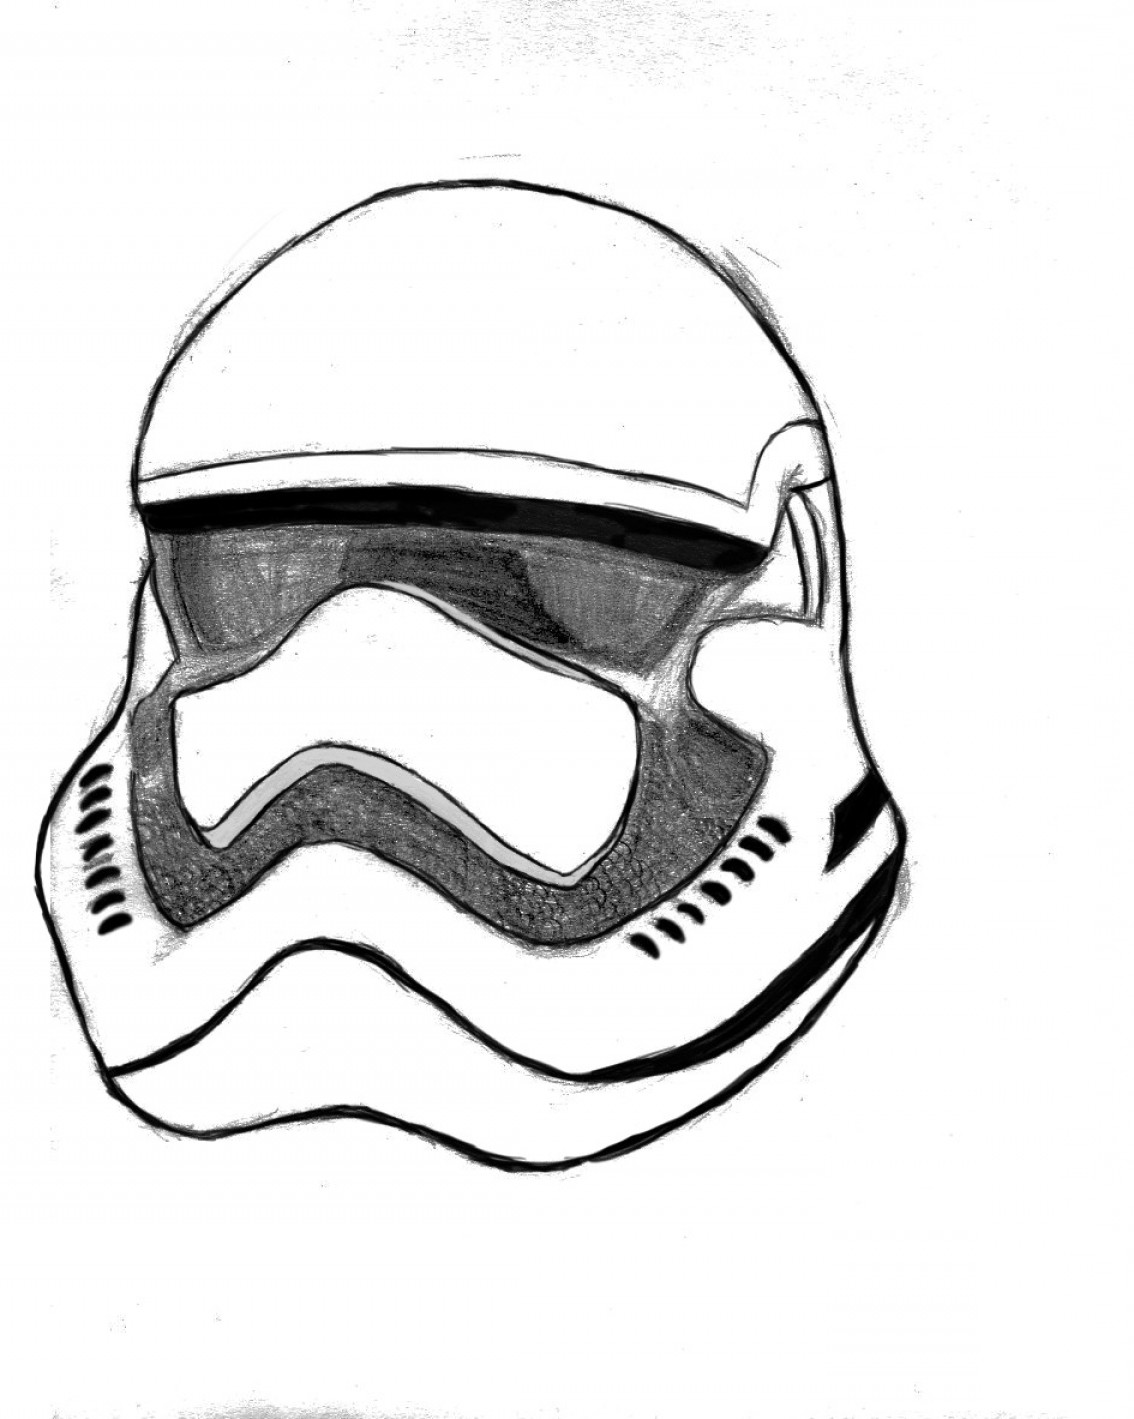 1134x1419 Star Wars Stormtrooper Helmet Drawing Geekchicpro